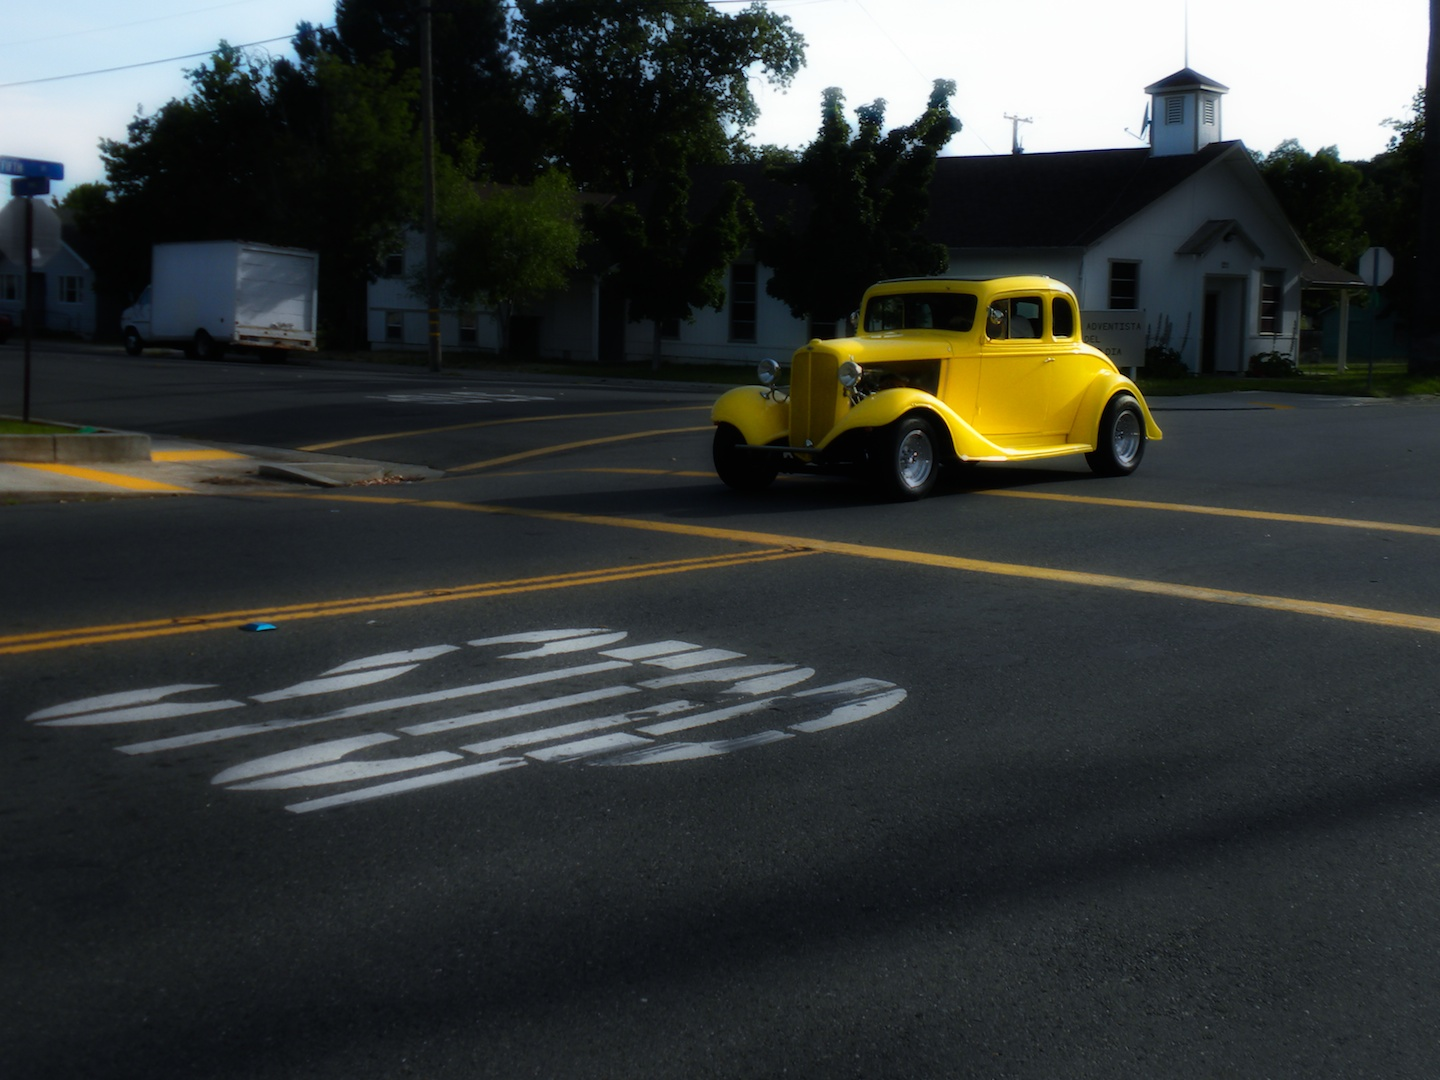 Old Car, Church, Crosswalk, Day, Intersection, HQ Photo